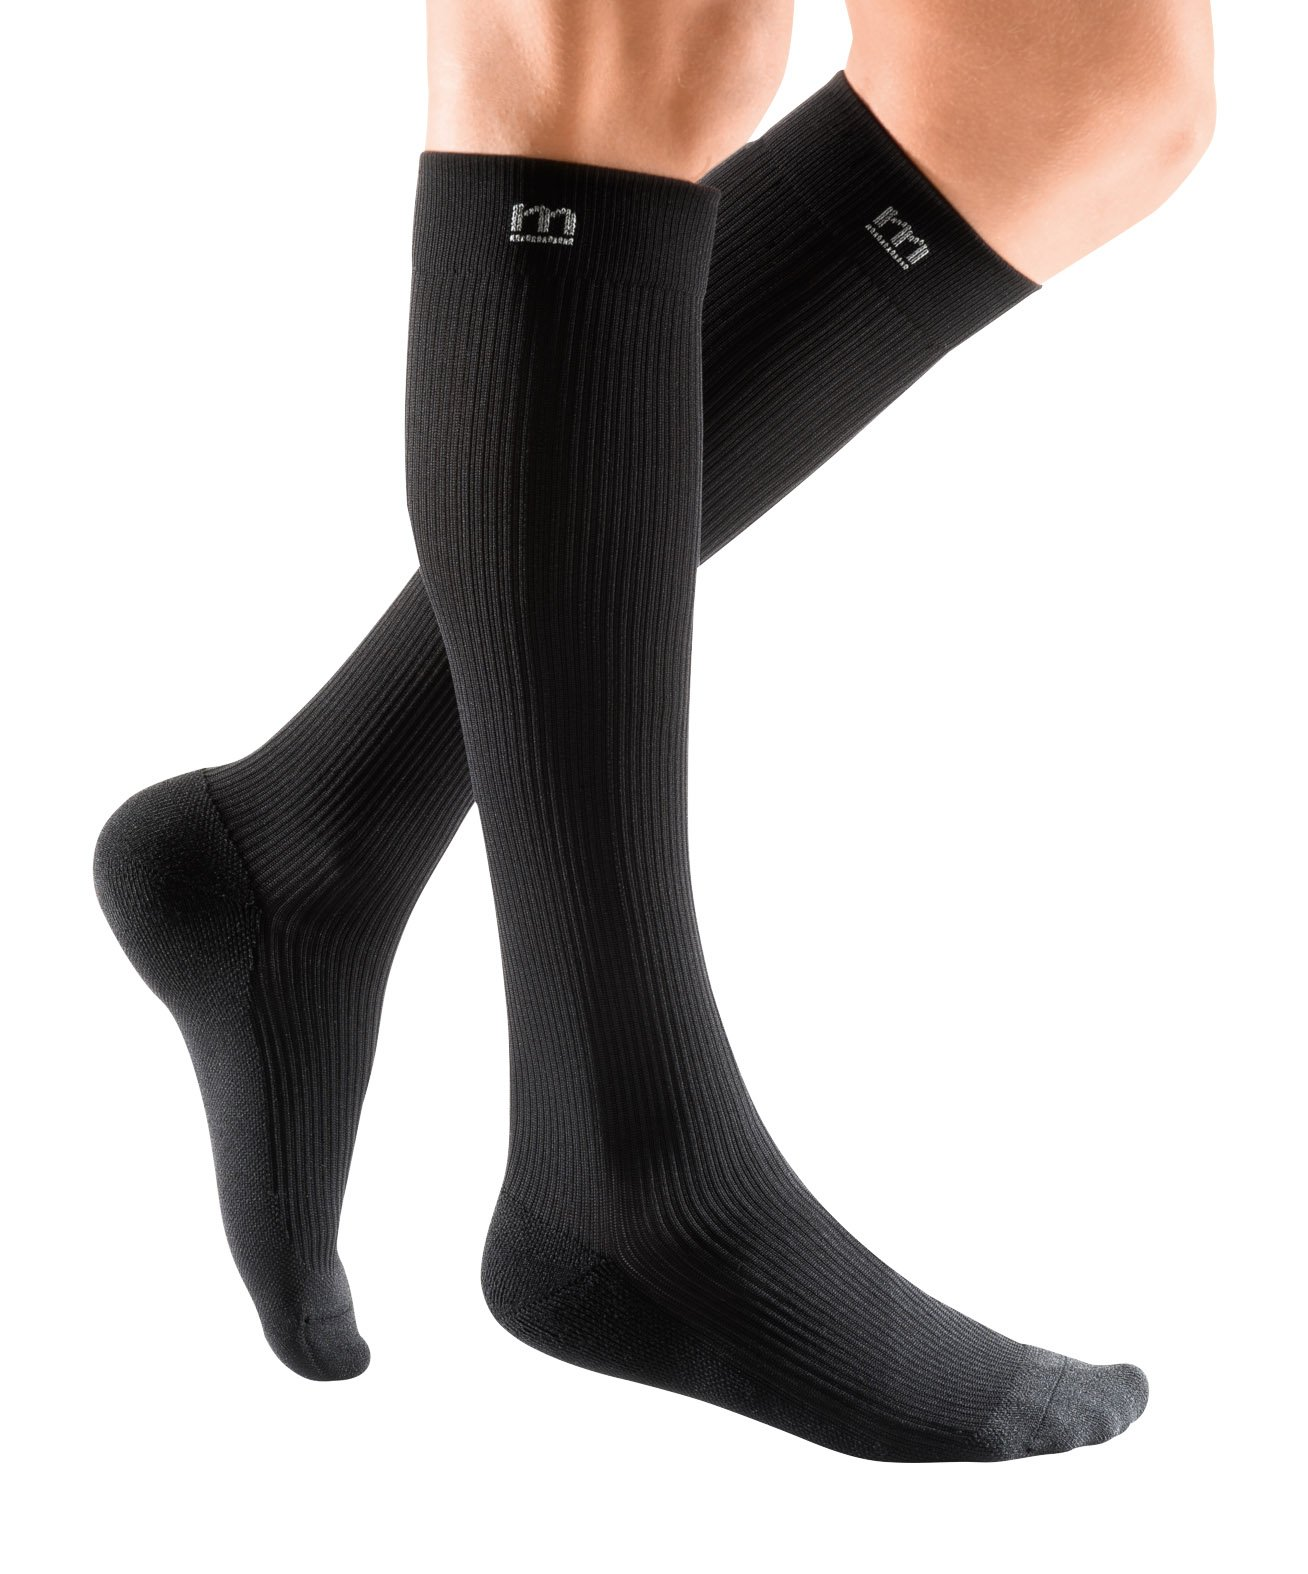 mediven Active, 15-20 mmHg, Calf High Compression Stockings, Closed Toe by mediven